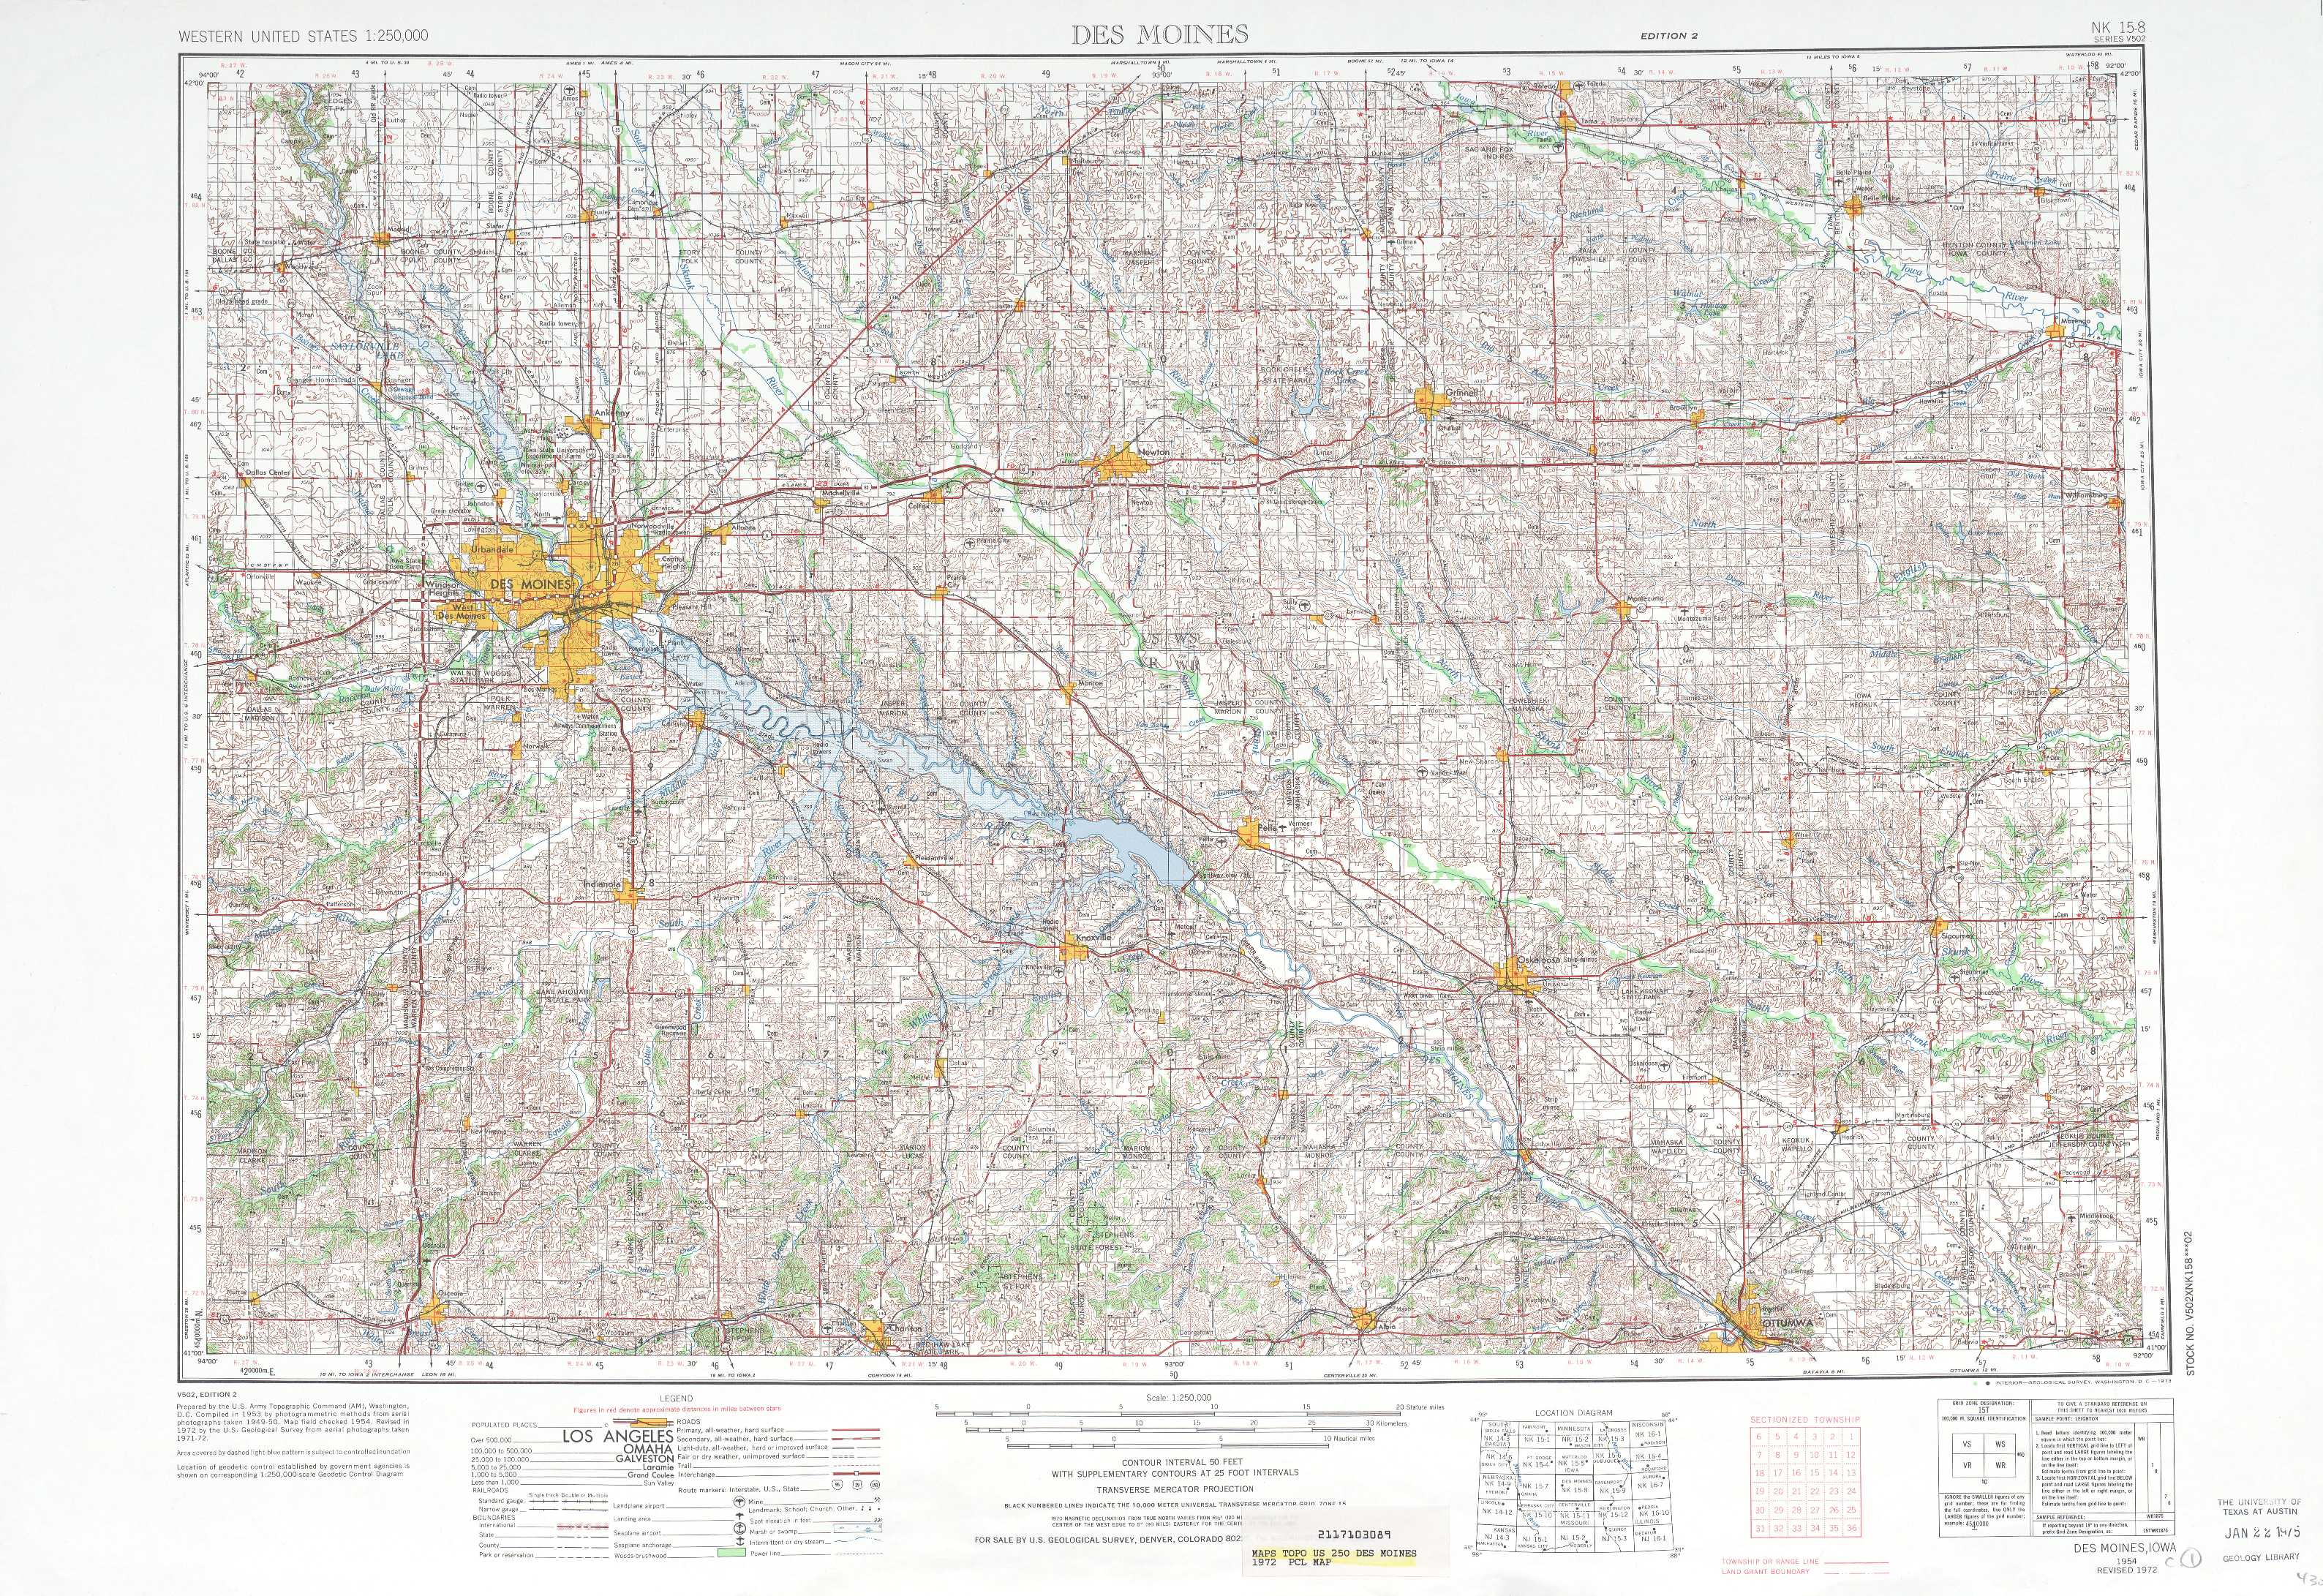 Des Moines topographic maps IA USGS Topo Quad 41092a1 at 1